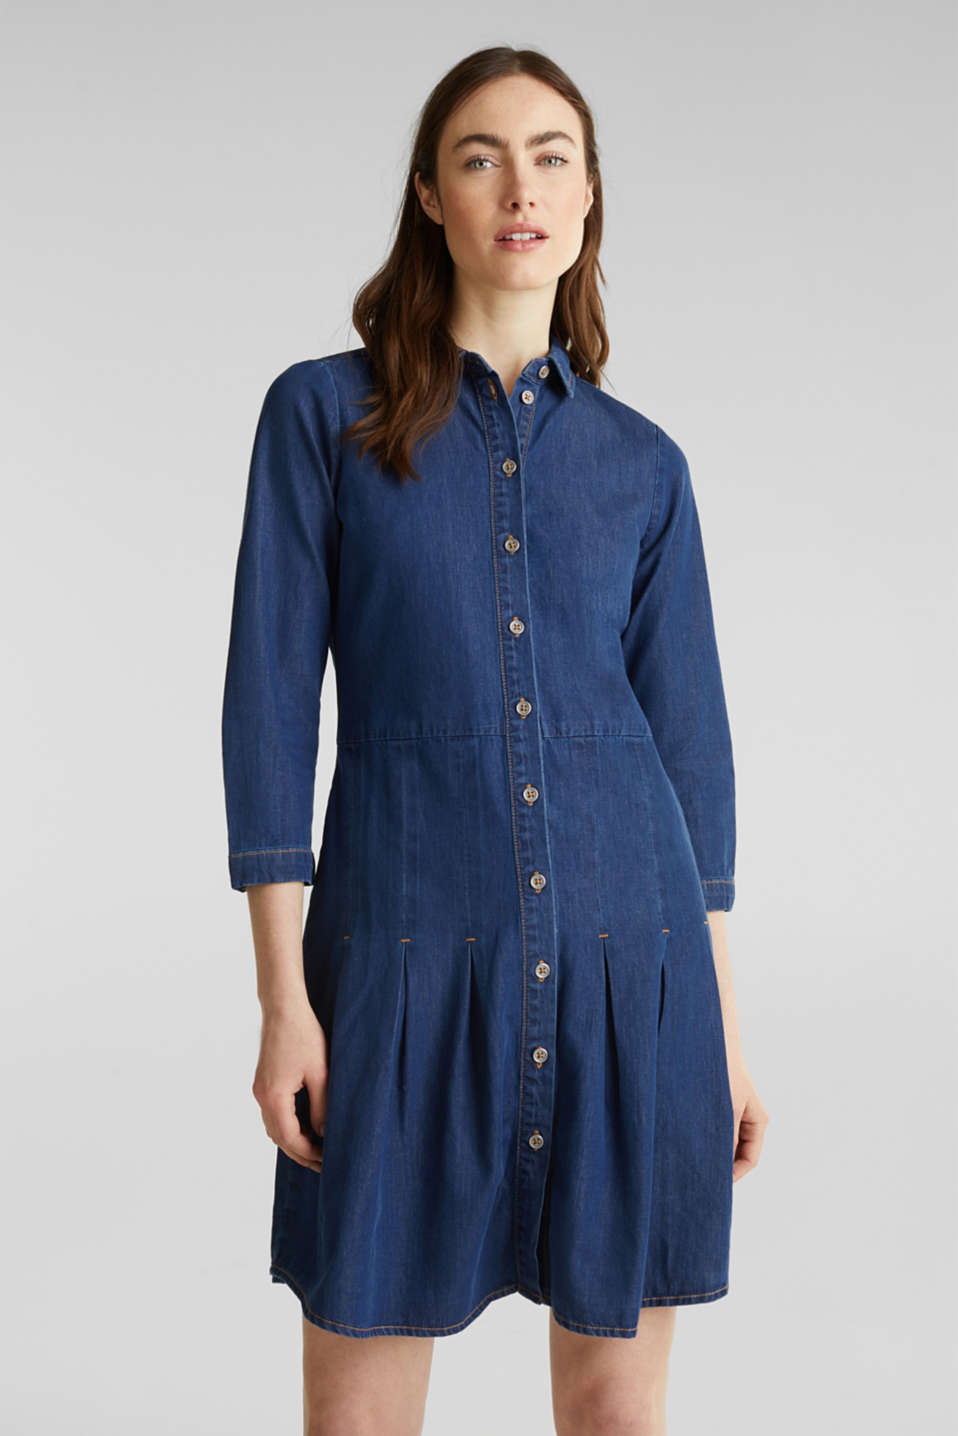 Esprit - Denim dress made of 100% organic cotton